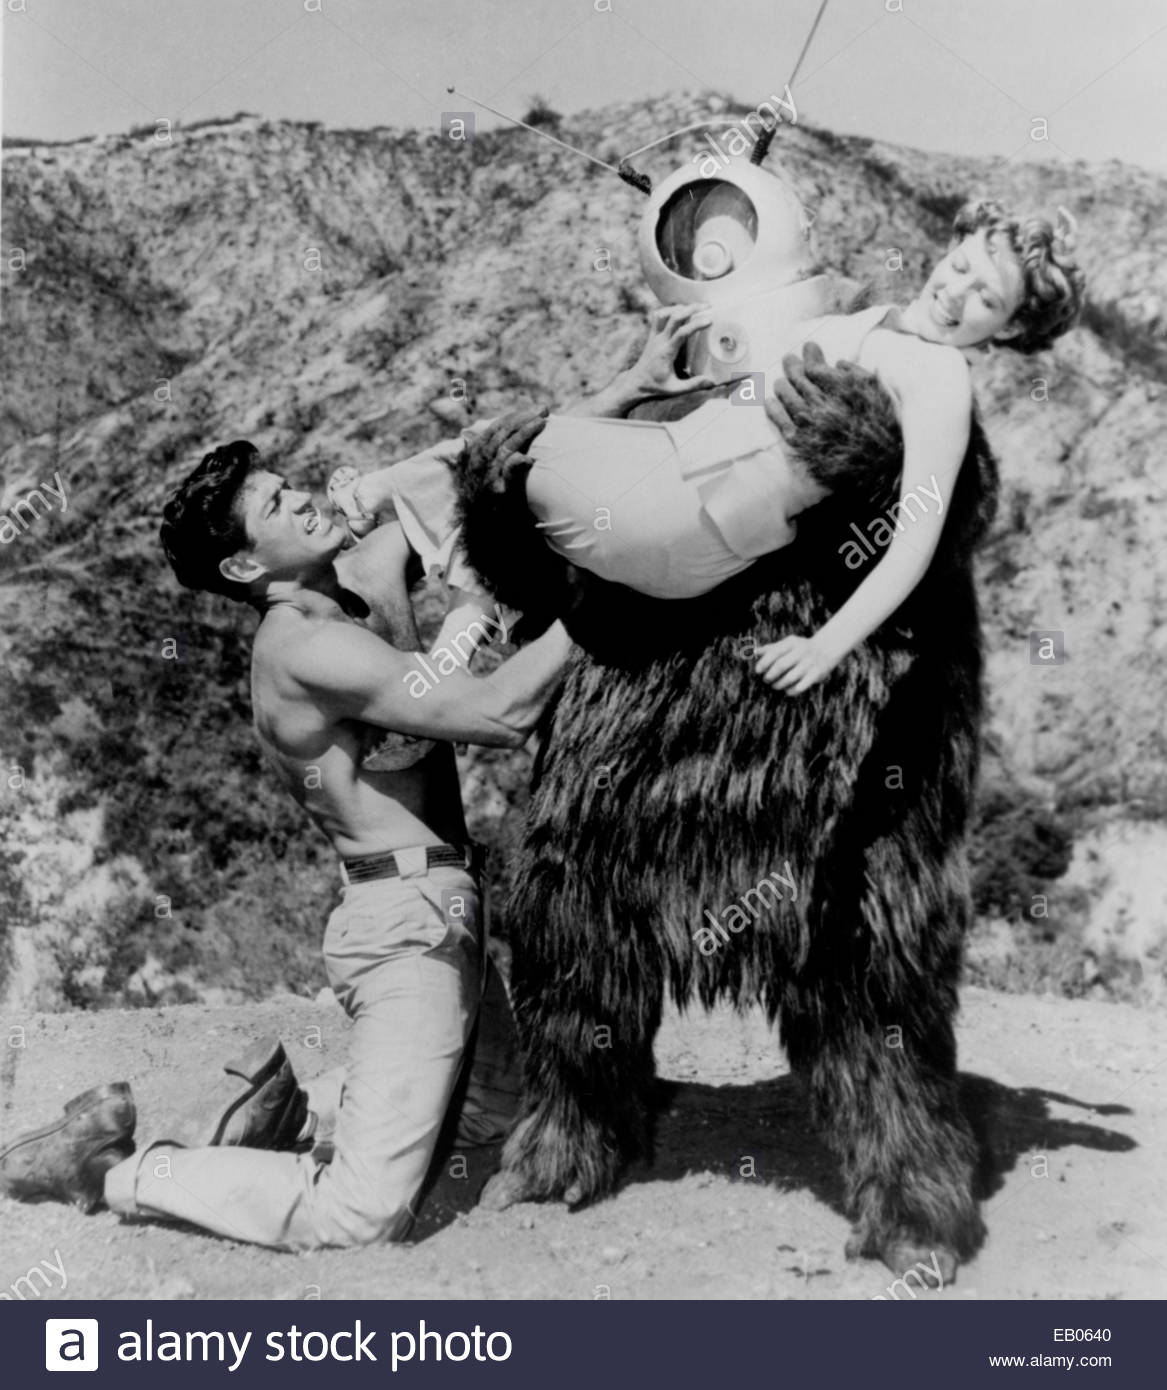 ROBOT MONSTER (1953) - still from low budget 1953 science fiction film. - Stock Image